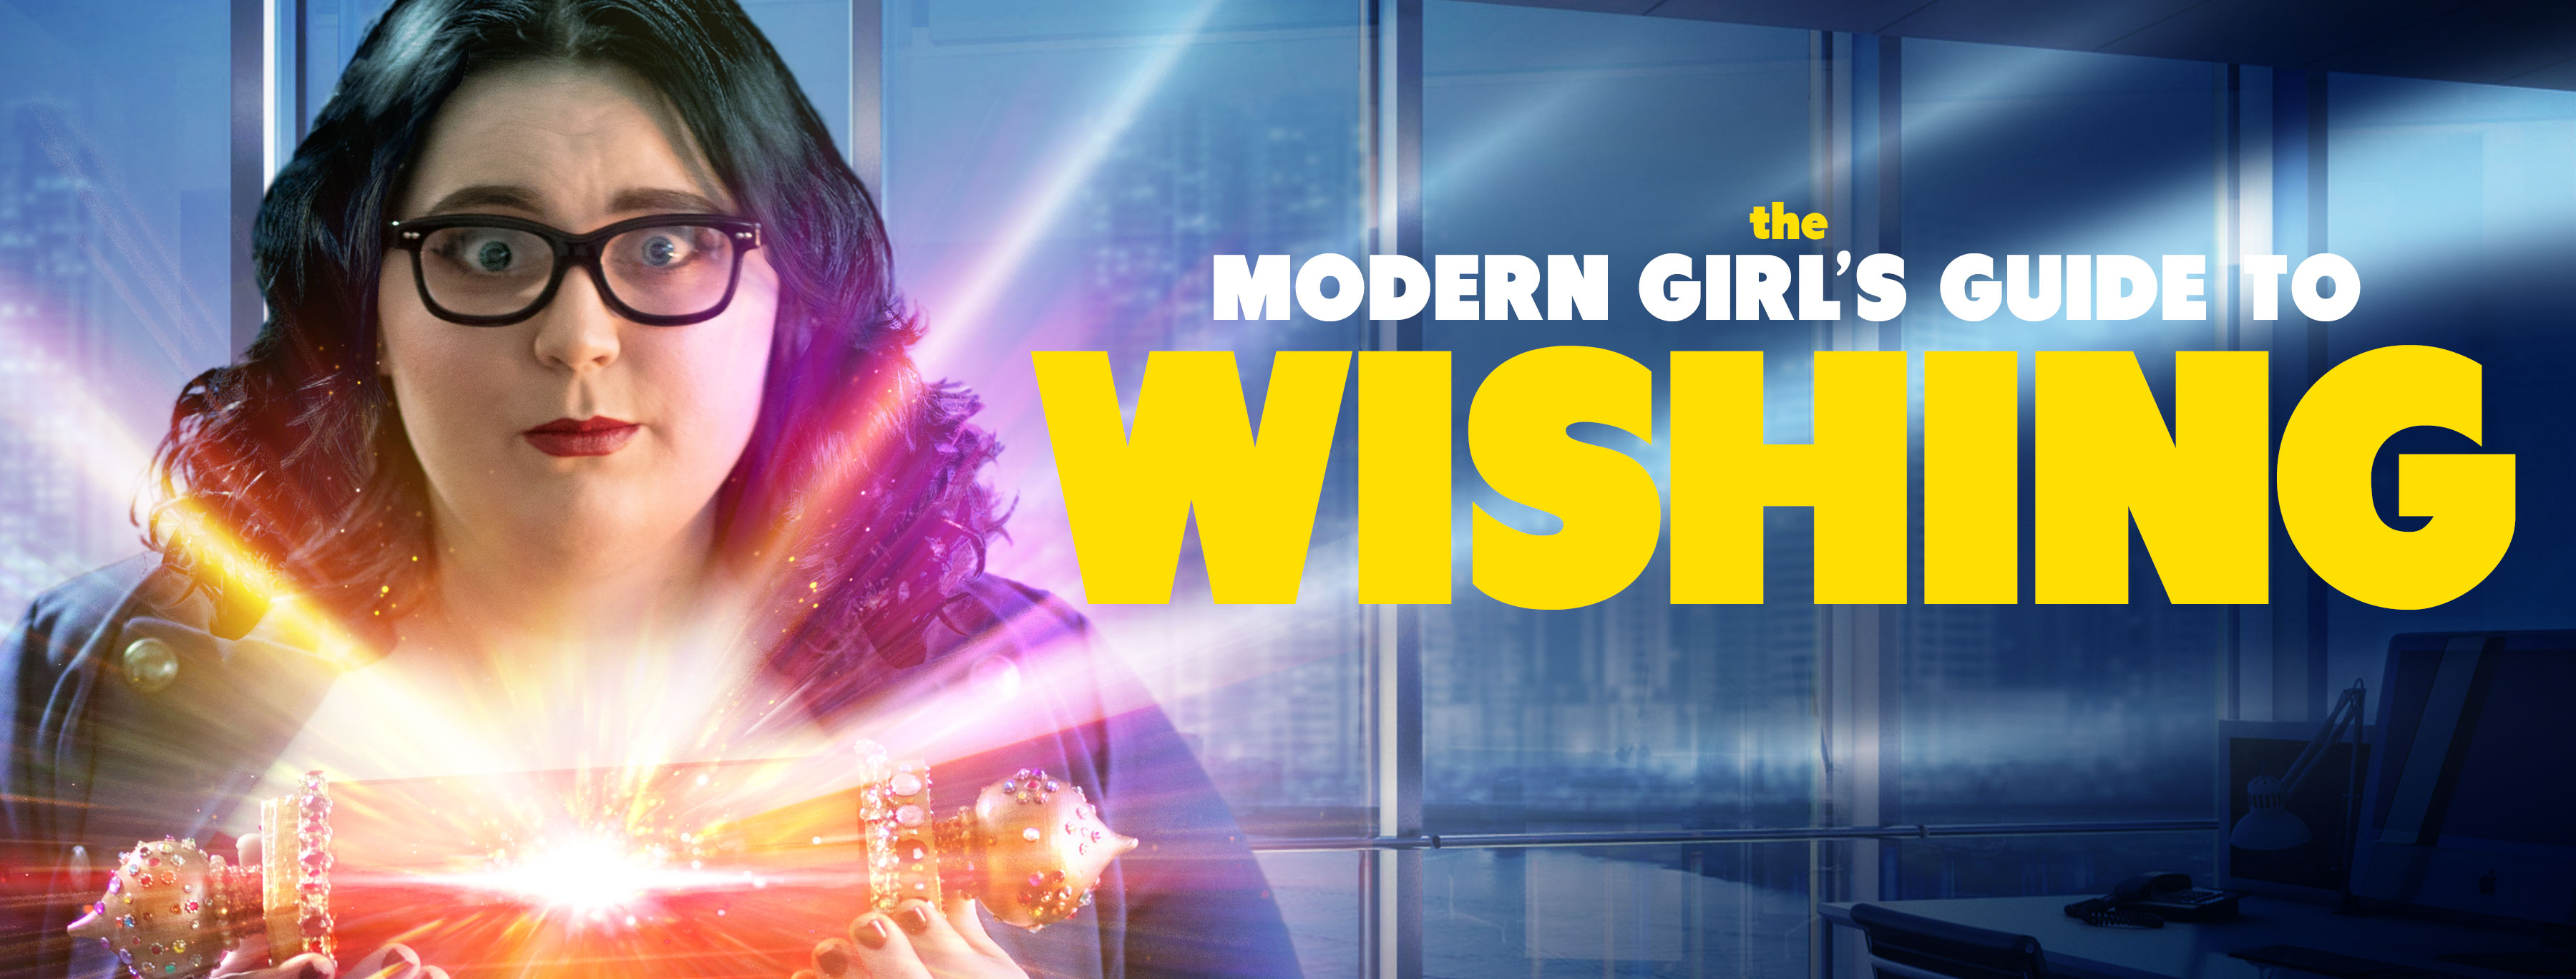 The Modern Girl's Guide to Wishing